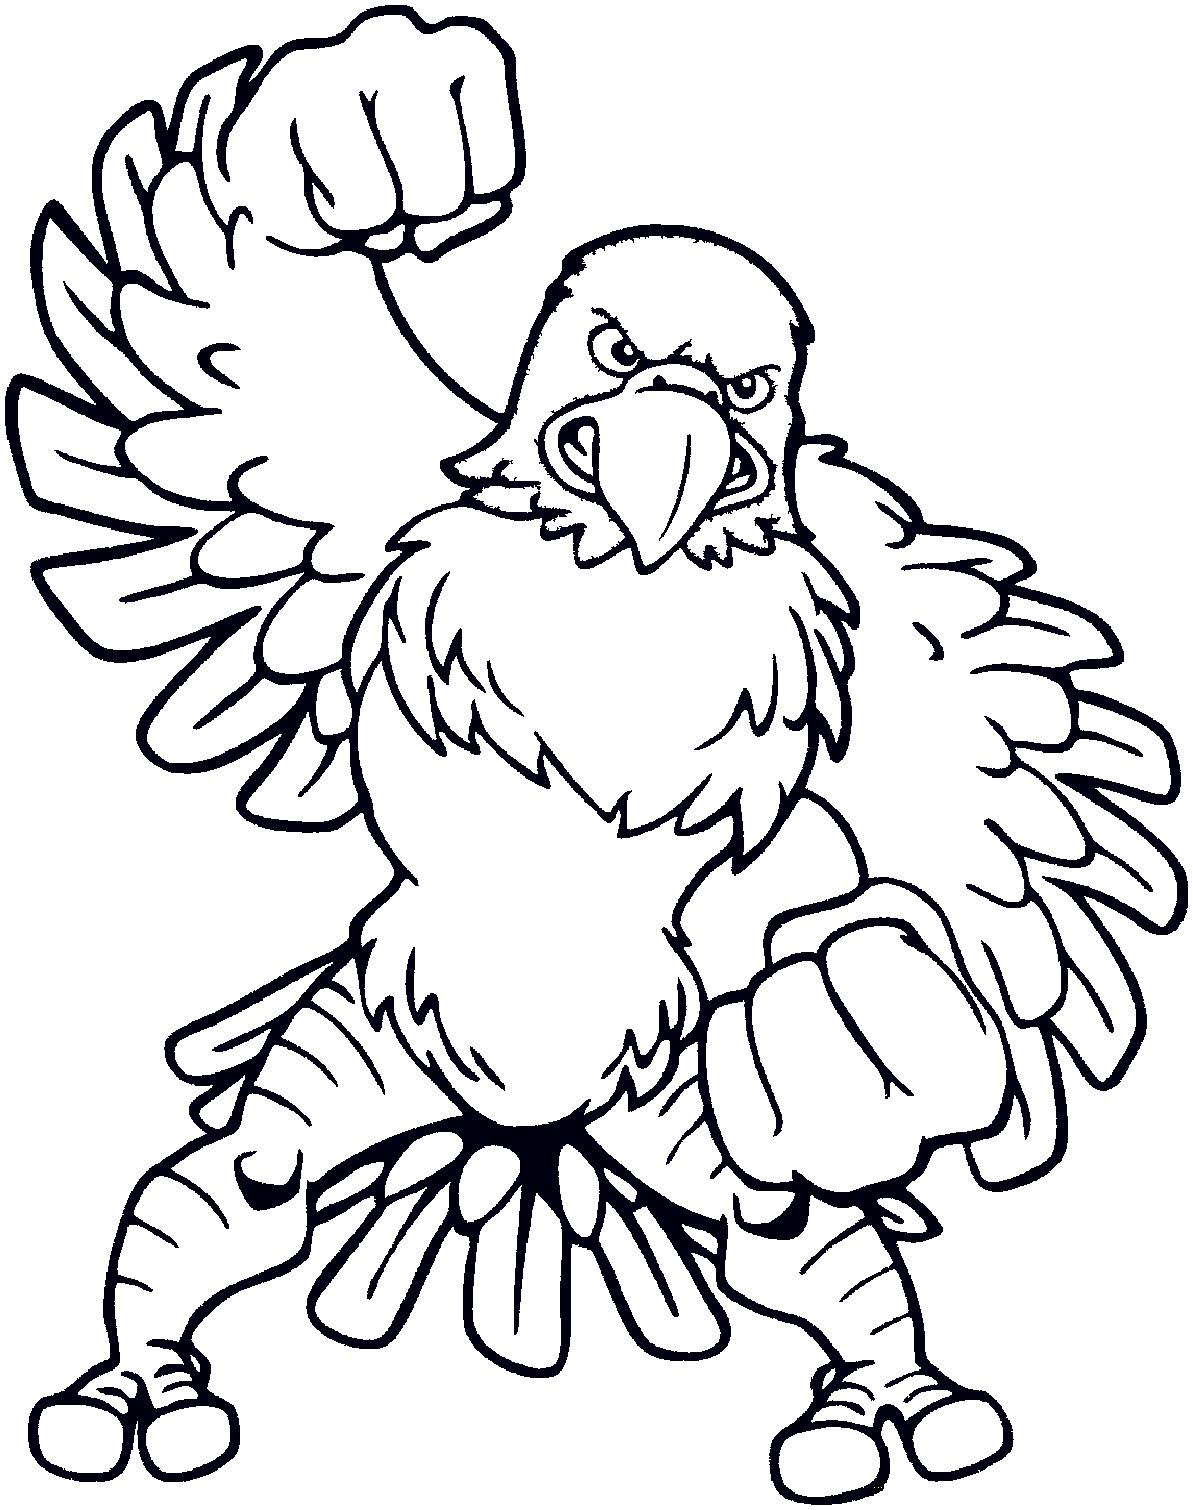 1193x1510 Eagle Coloring Pages Printable